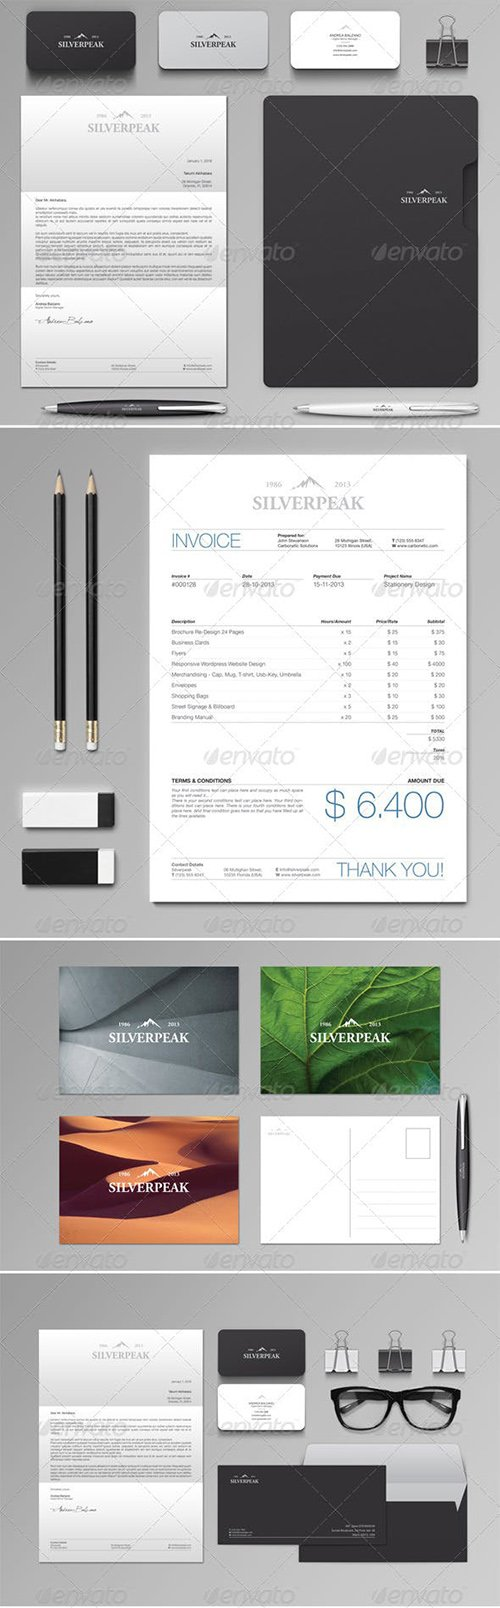 GraphicRiver - Silverpeak Stationery Set & Invoice Template 6208533